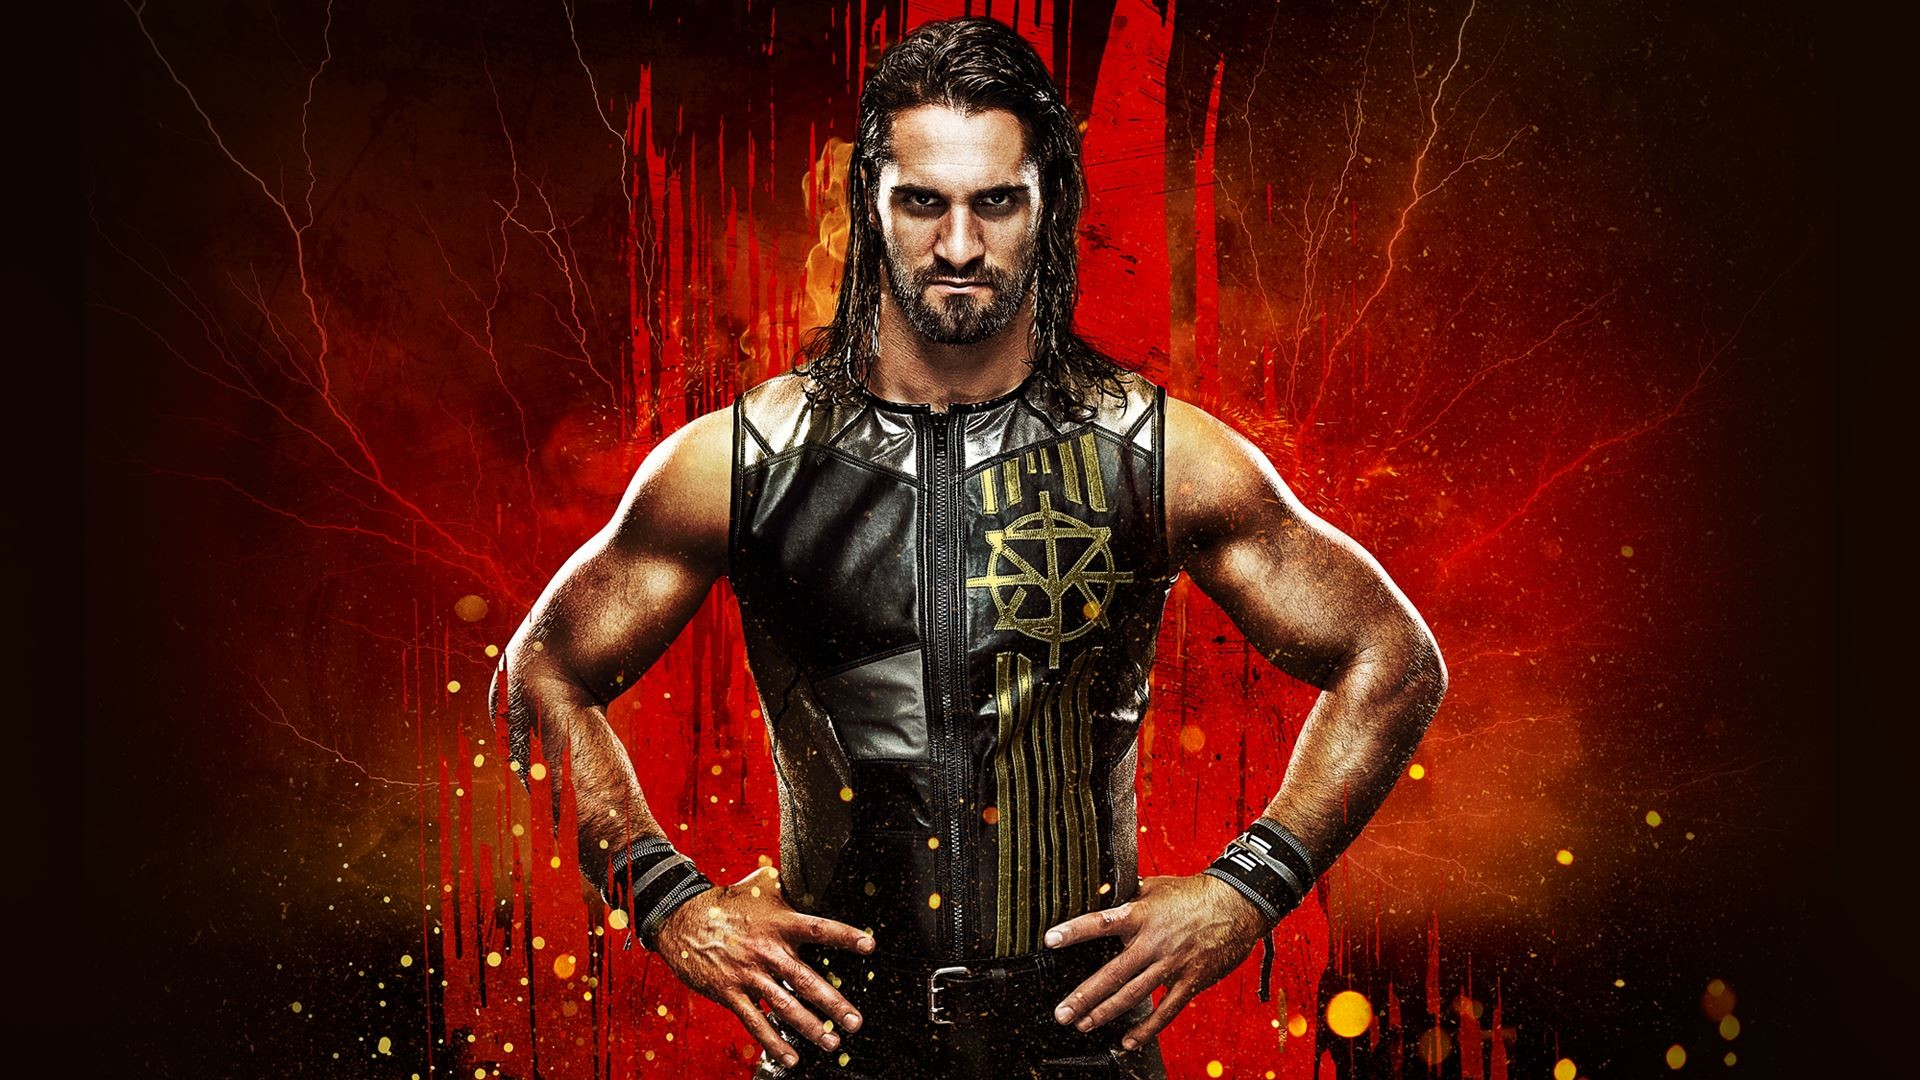 Seth Rollins Wallpapers (84+ images)